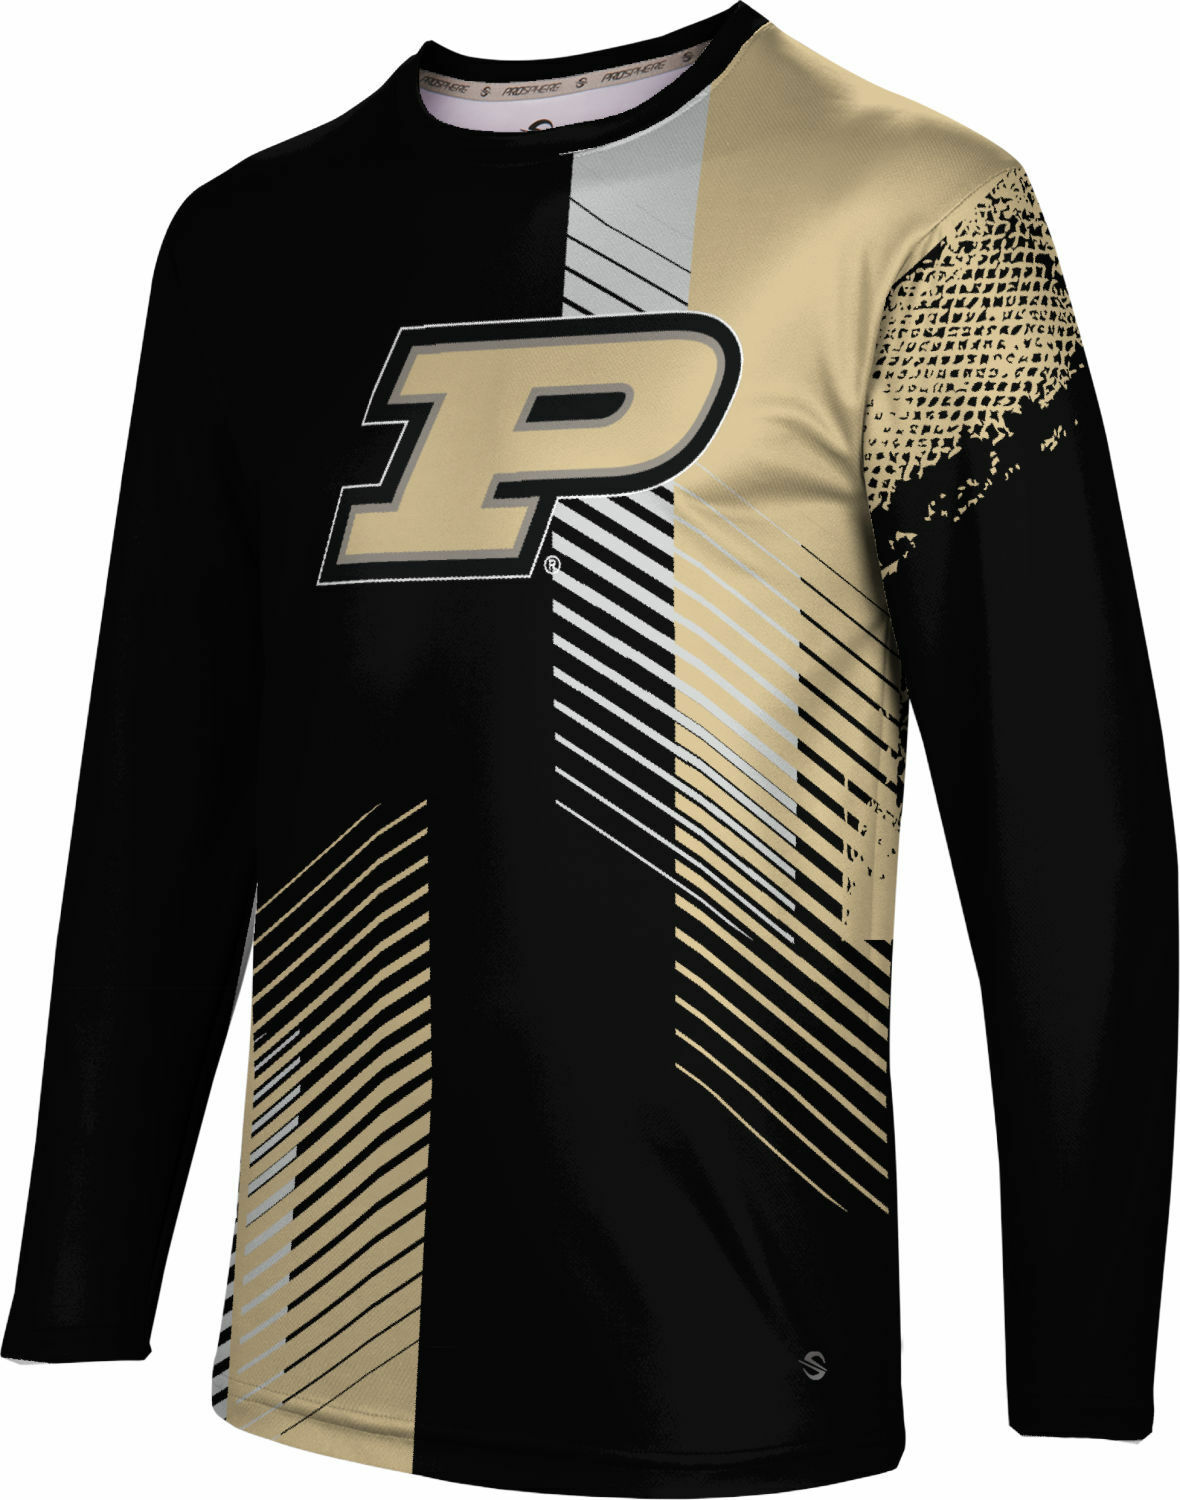 ProSphere Men's Purdue University Hustle Long Sleeve Tee (PU)